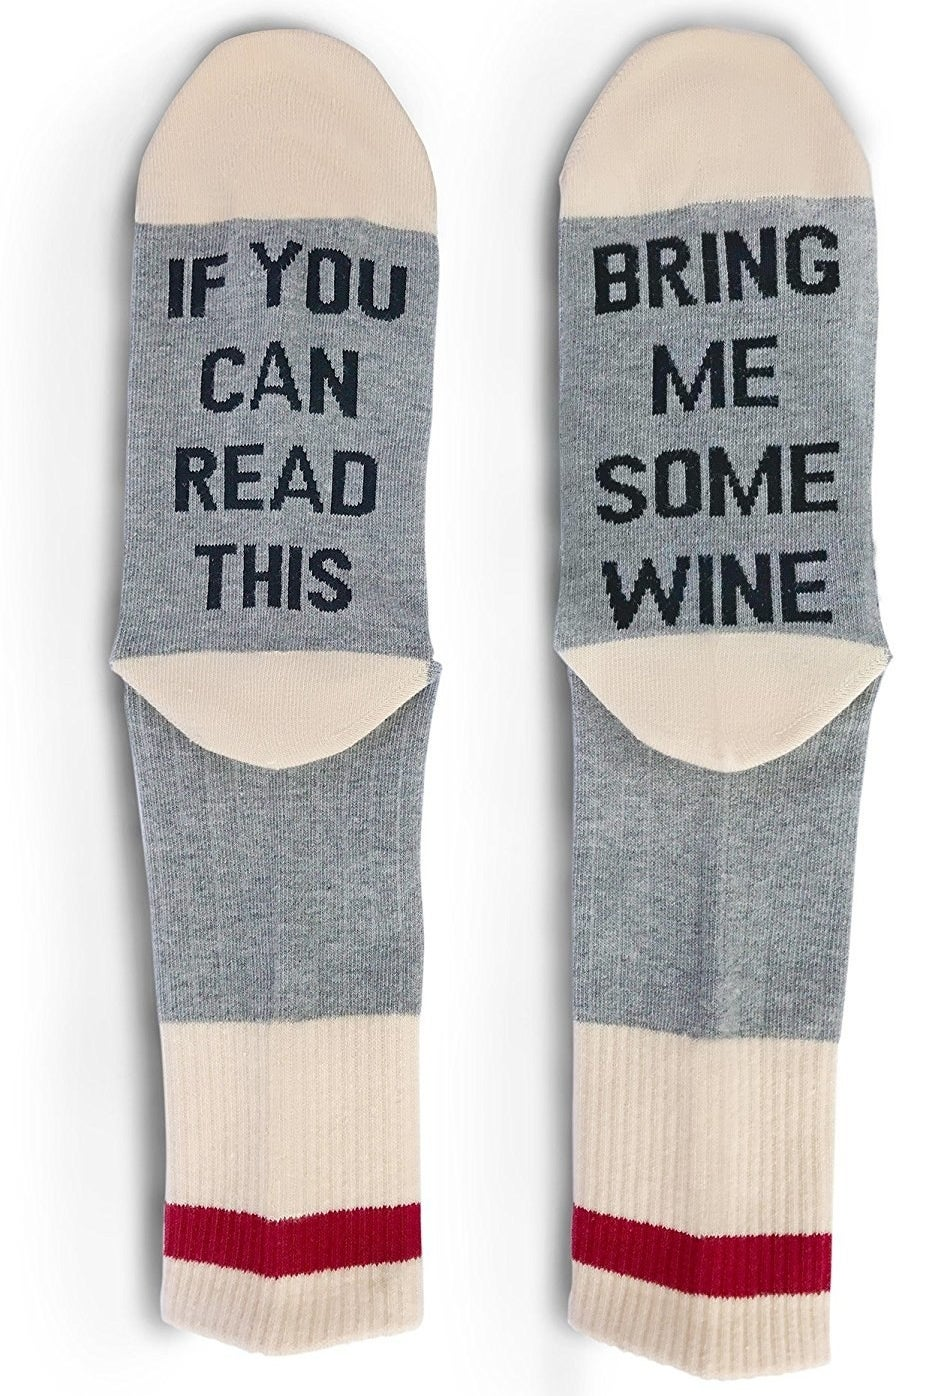 A pair of cozy socks that'll really get their point across.